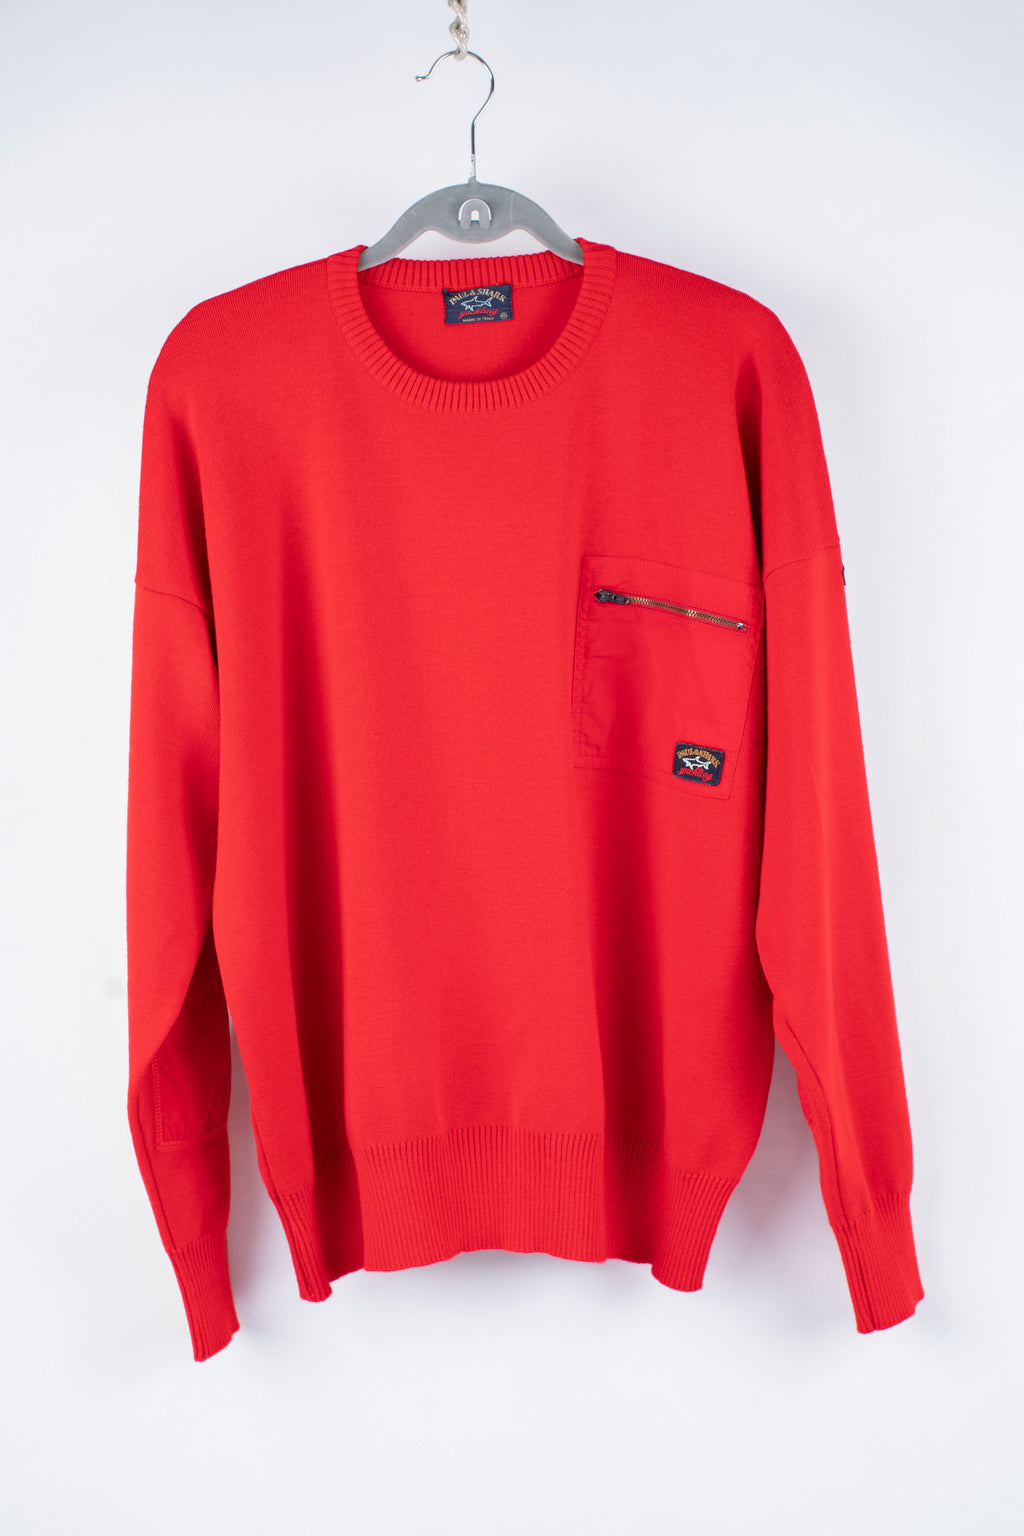 Paul & Shark Yachting Men's Red Wool Crew Neck Sweater, XL